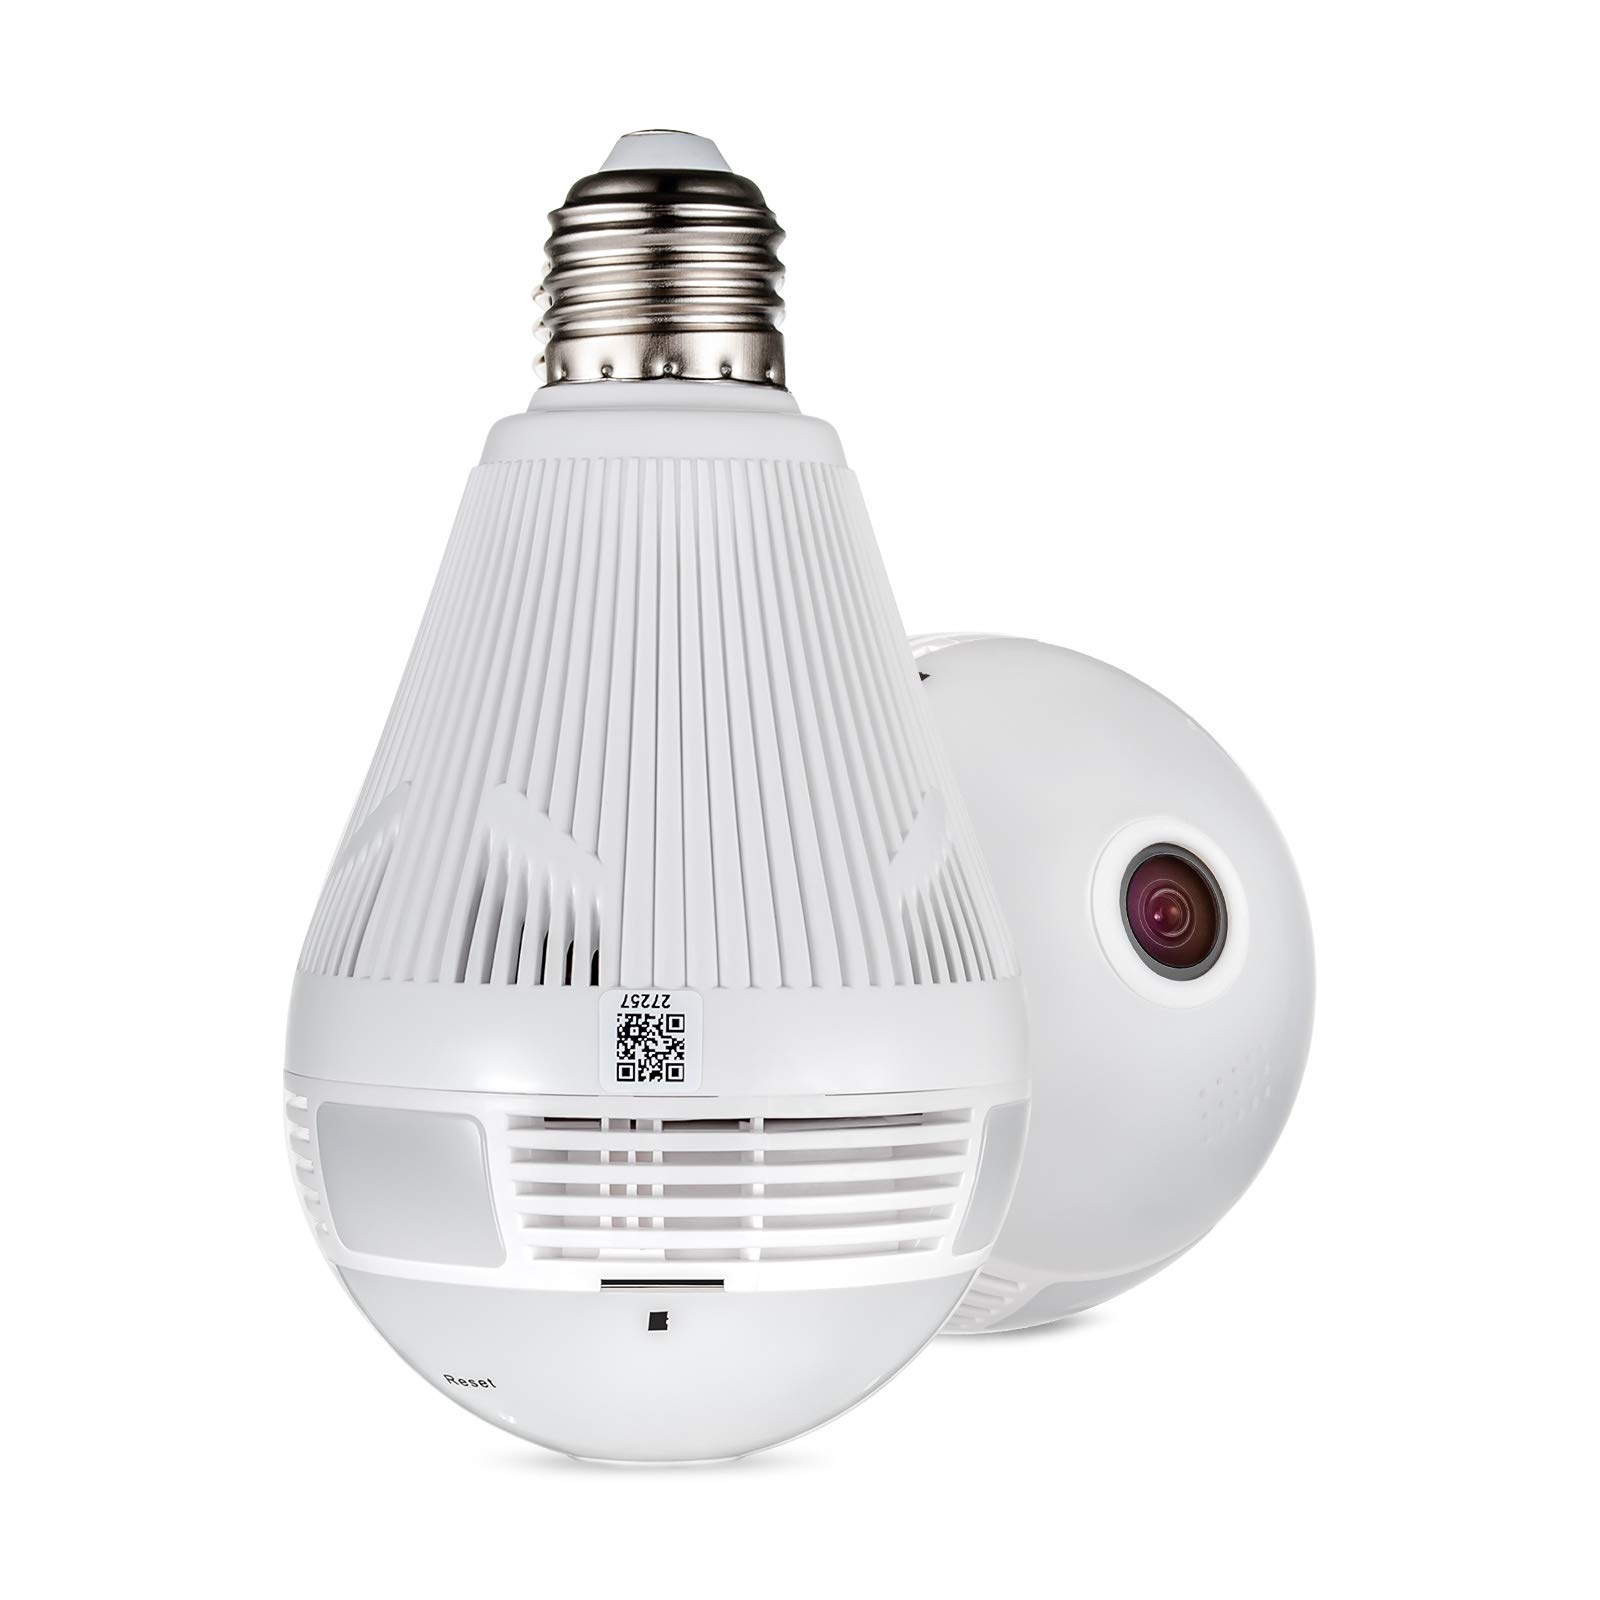 FUERS 360 Degree WiFi Panoramic Bulb Camera IP Security Surveillance Camera for Home Wireless Remote View Baby Pet Motion Detection Light Bulb VR Camera with Night Vision/Two-Way Audio,Support 2.4G by Fuers